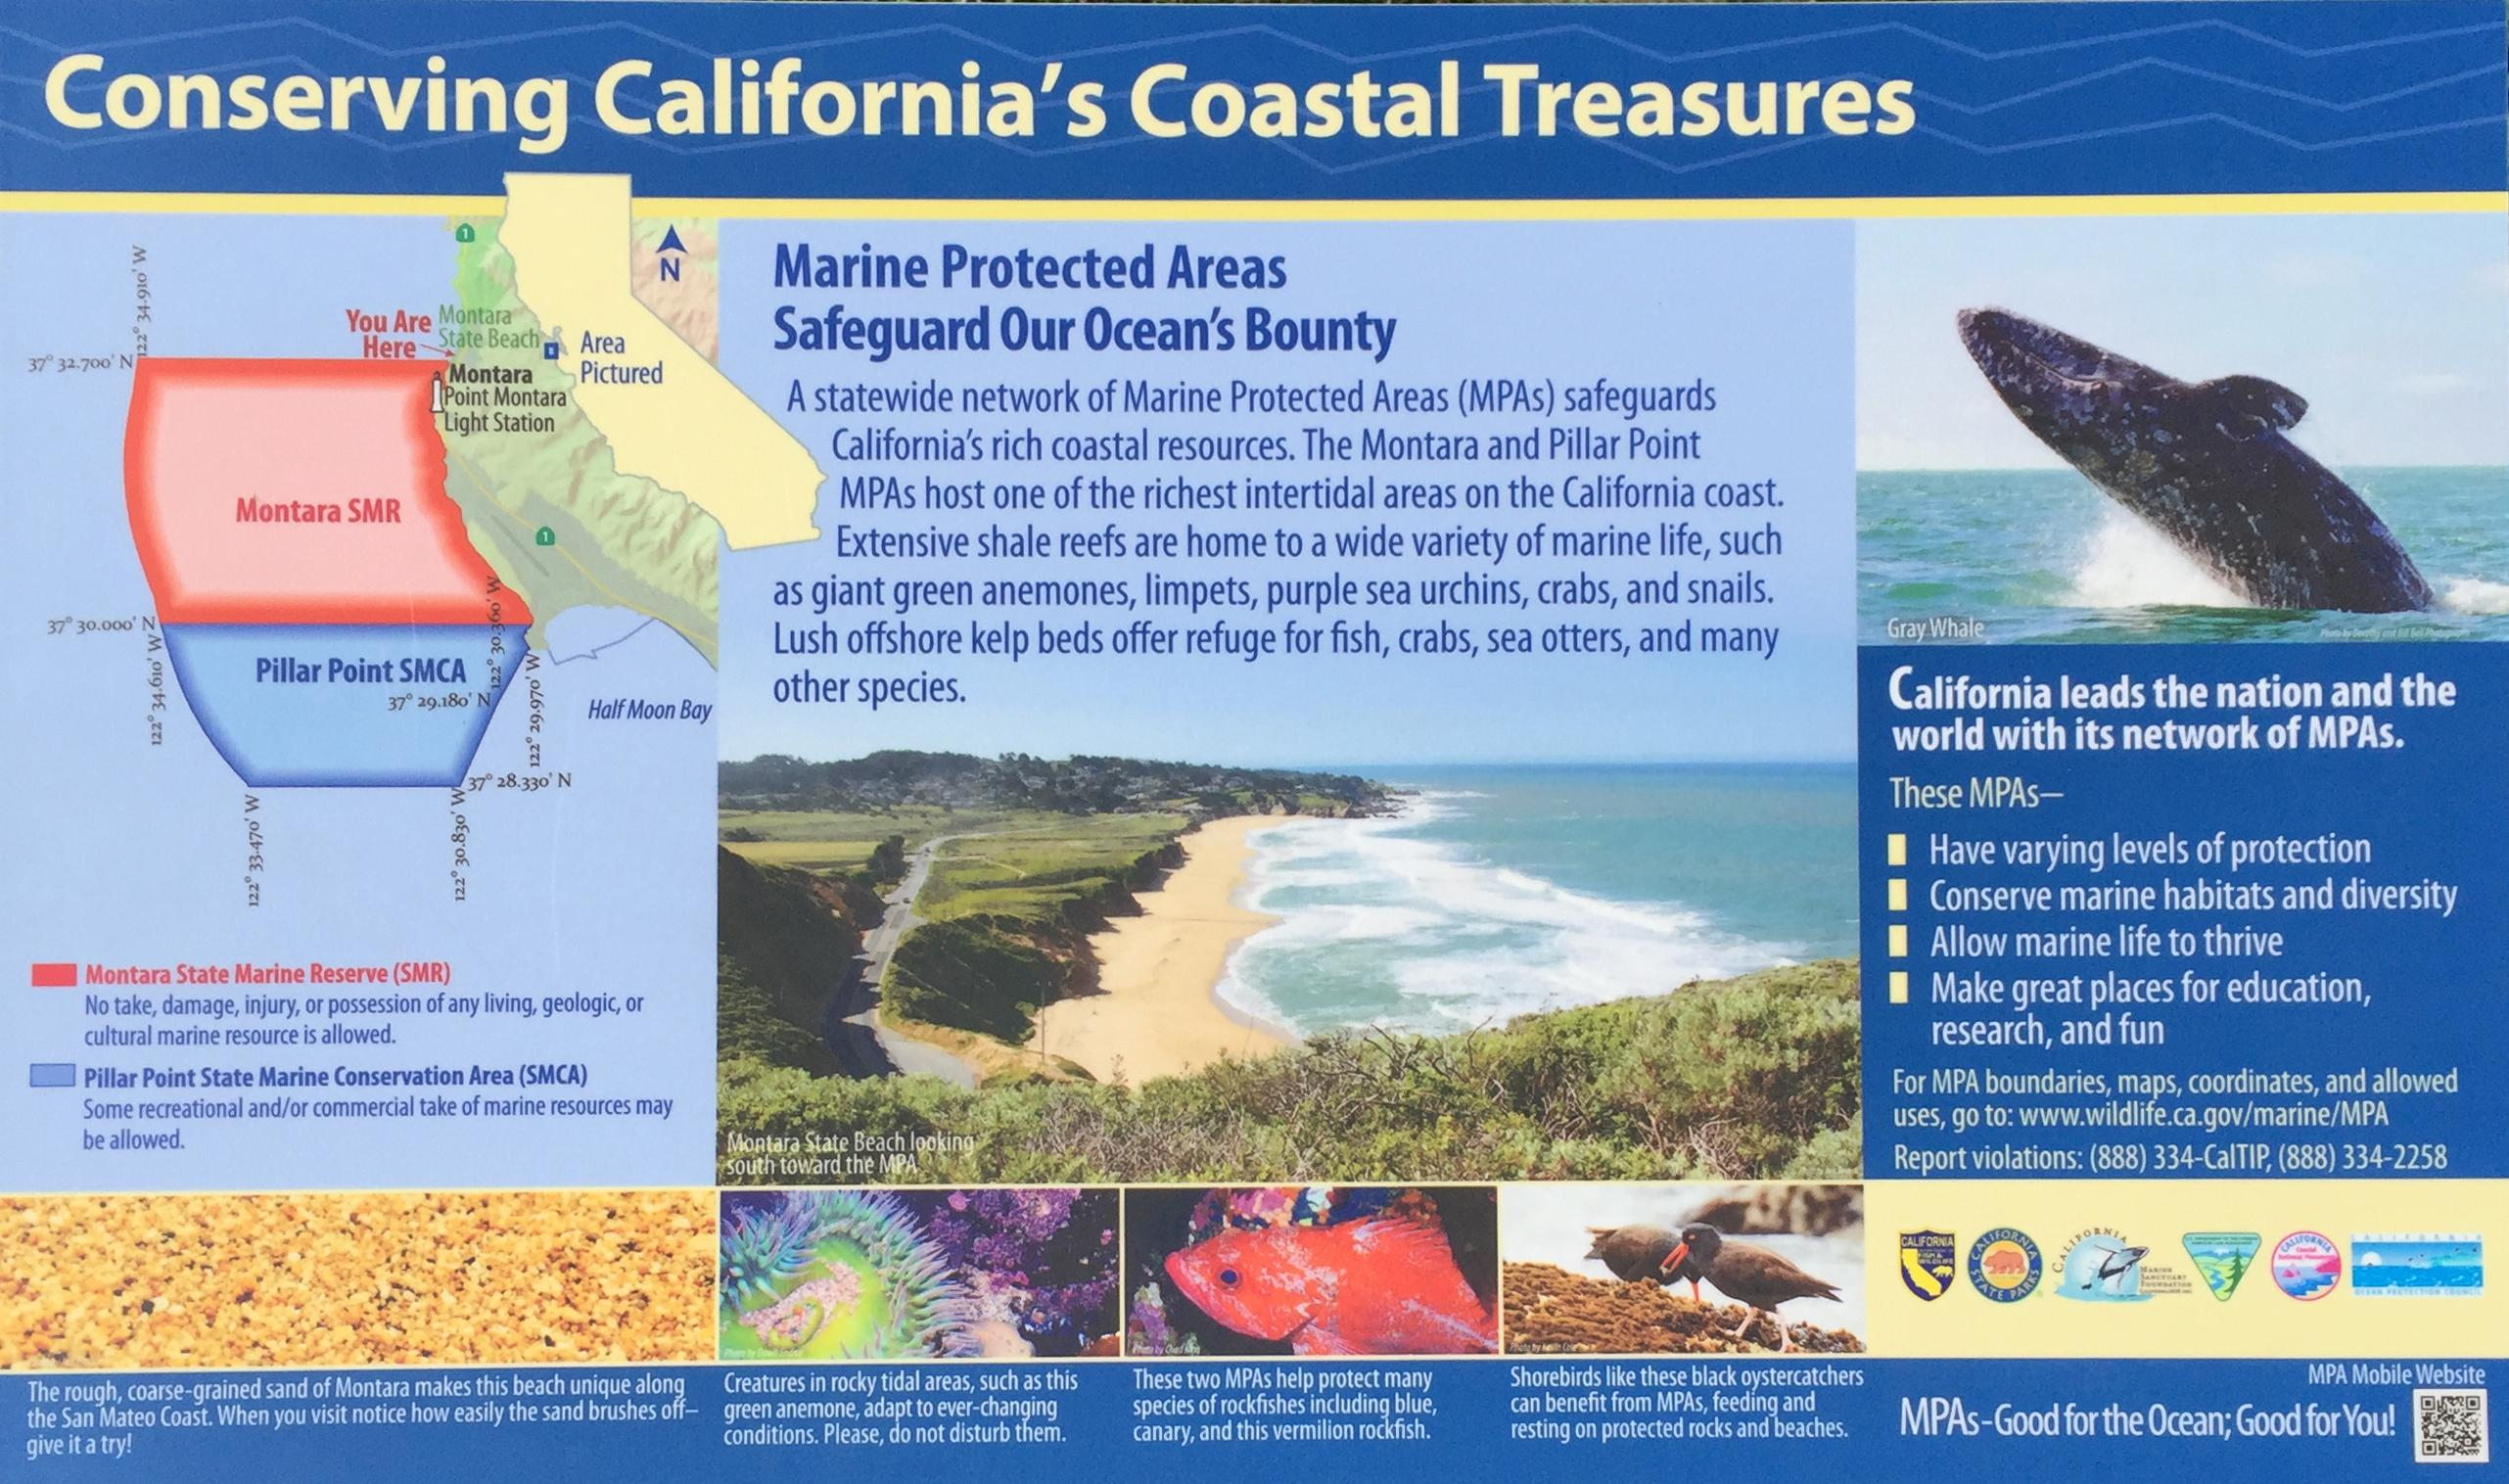 how can we protect marine life We can help to sustain marine biodiversity by using laws and economic incentives to protect species, setting aside marine reserves to protect ecosystems, and using community-based integrated coastal management.